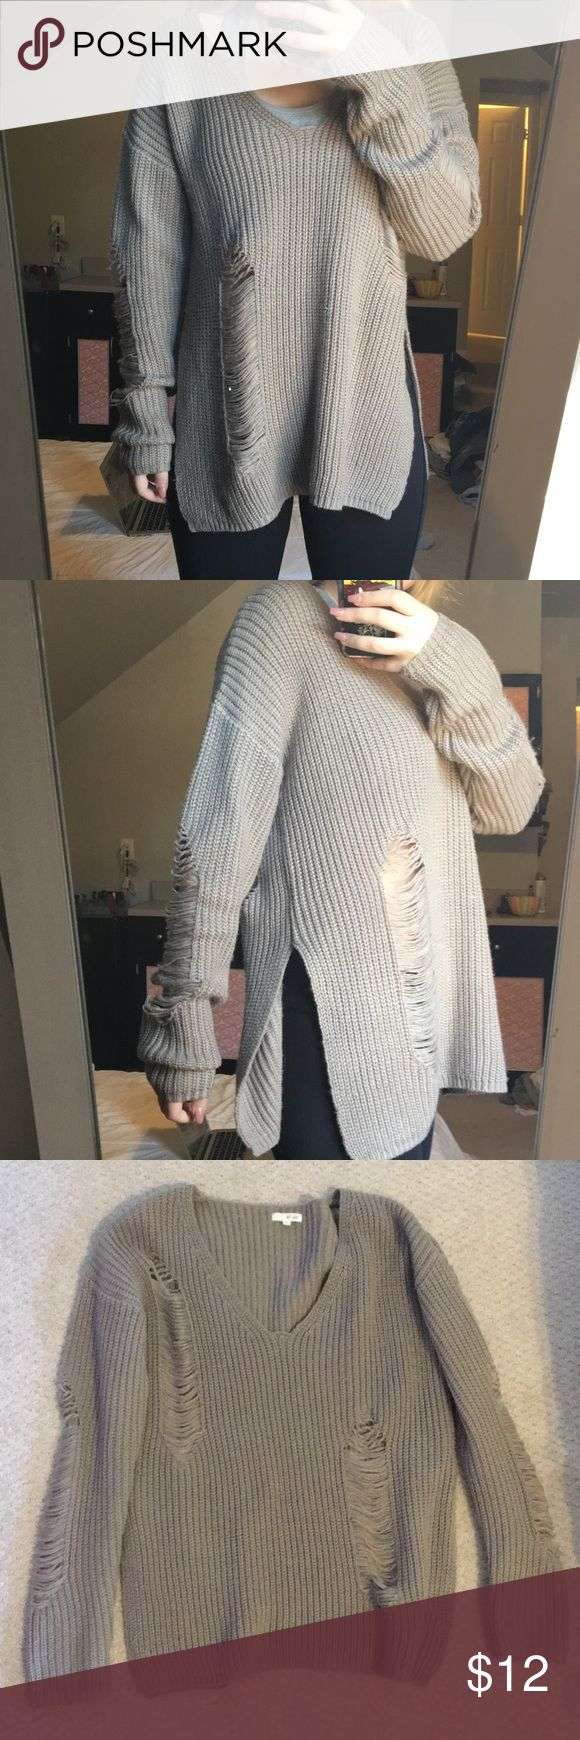 Wet Seal oversized distressed sweater Wet Seal oversized v-neck distressed sweater with slits up each side Wet Seal Sweaters